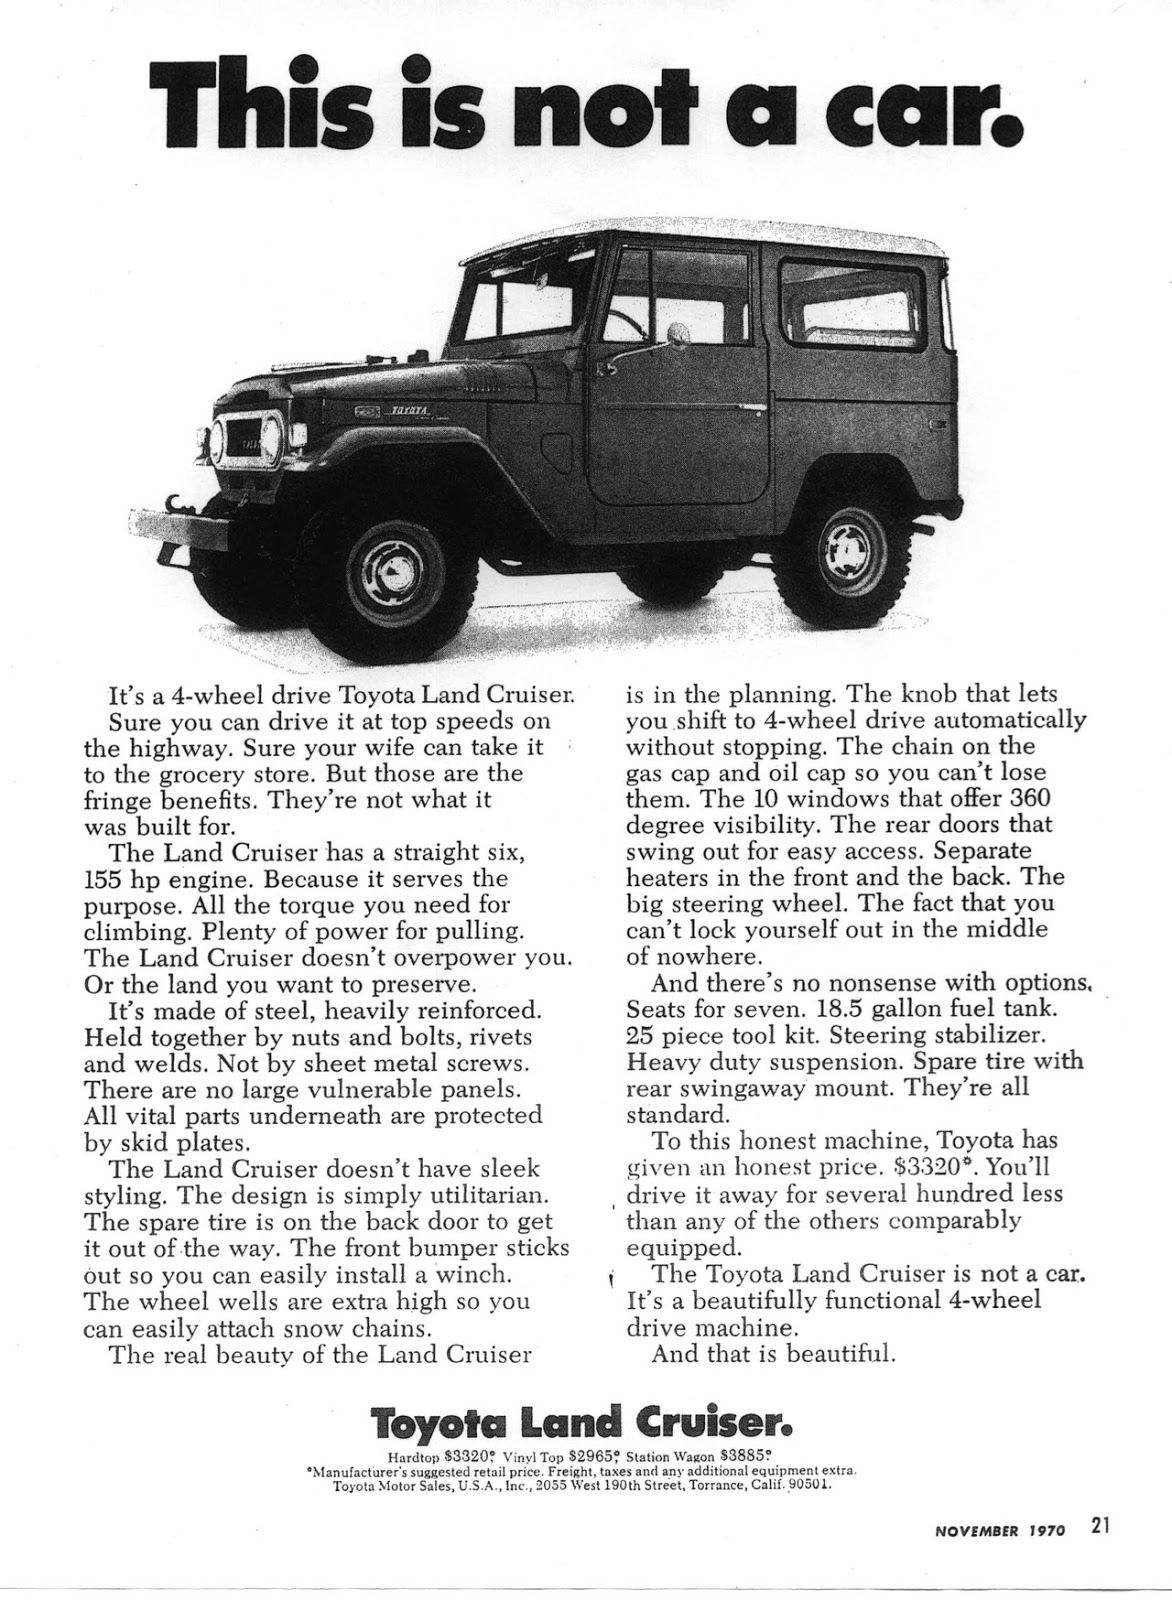 Toyota Land Cruiser Not A Car Vehicles Some New Old 1973 Owners Manual